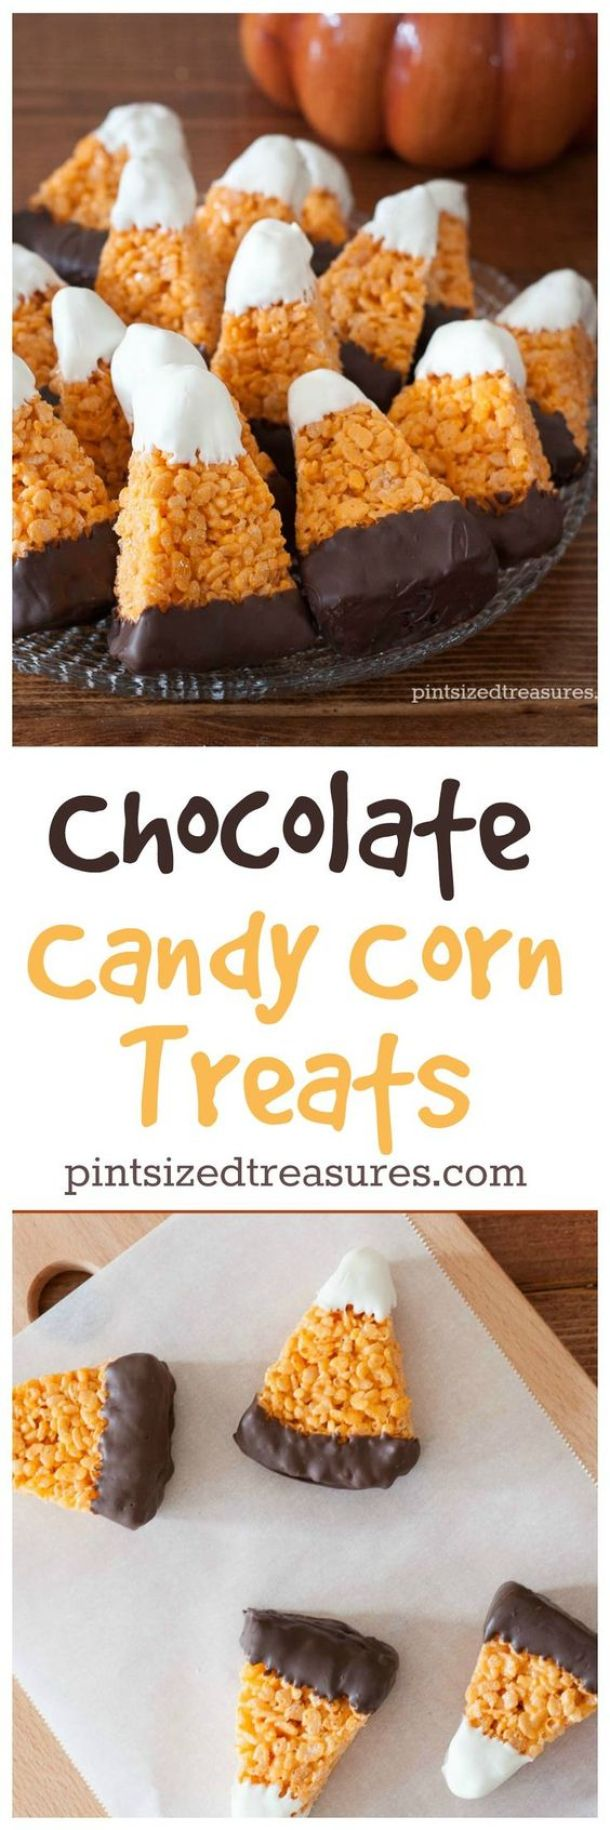 Halloween Party Treats Appetizers and Desserts Recipes - Chocolate Dipped Candy Corn Rice Krispies Treats Recipe via PInt-Sized Treasures